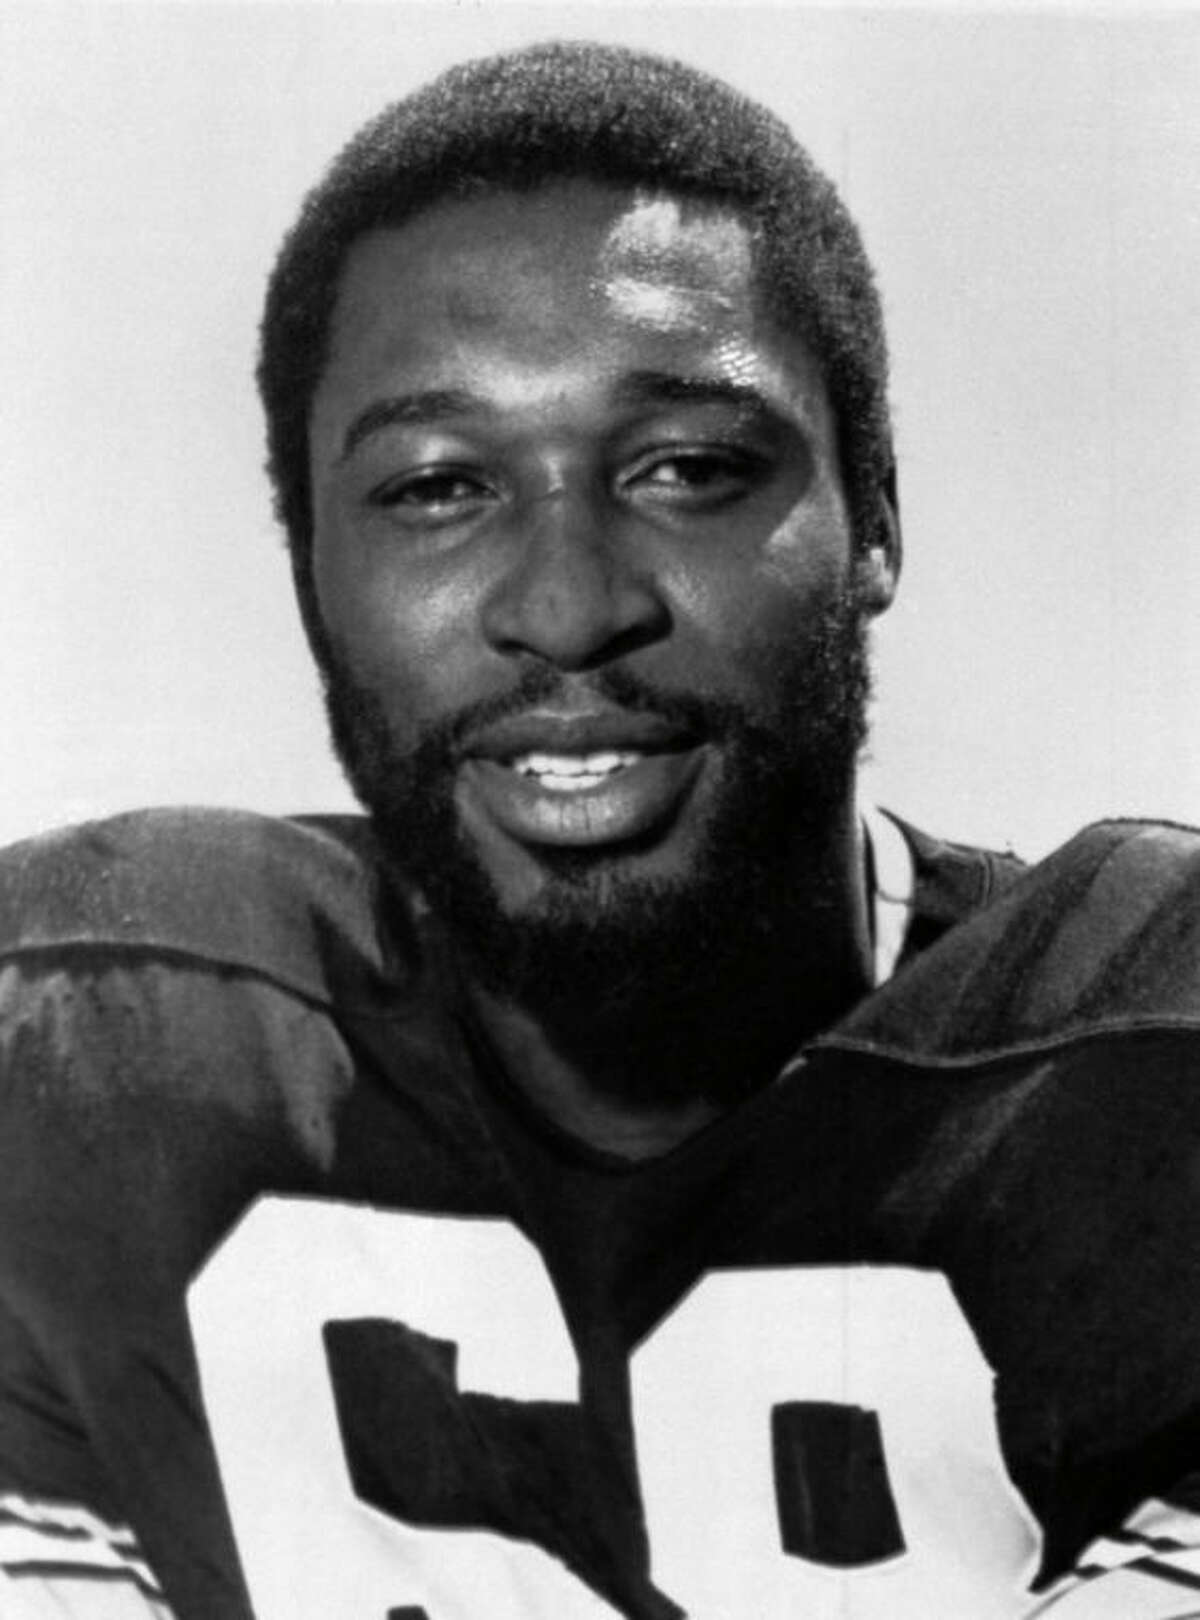 FILE - This is a 1977 file photo showing Pittsburgh Steelers football player L.C. Greenwood. Greenwood, who won four Super Bowls as a member of the